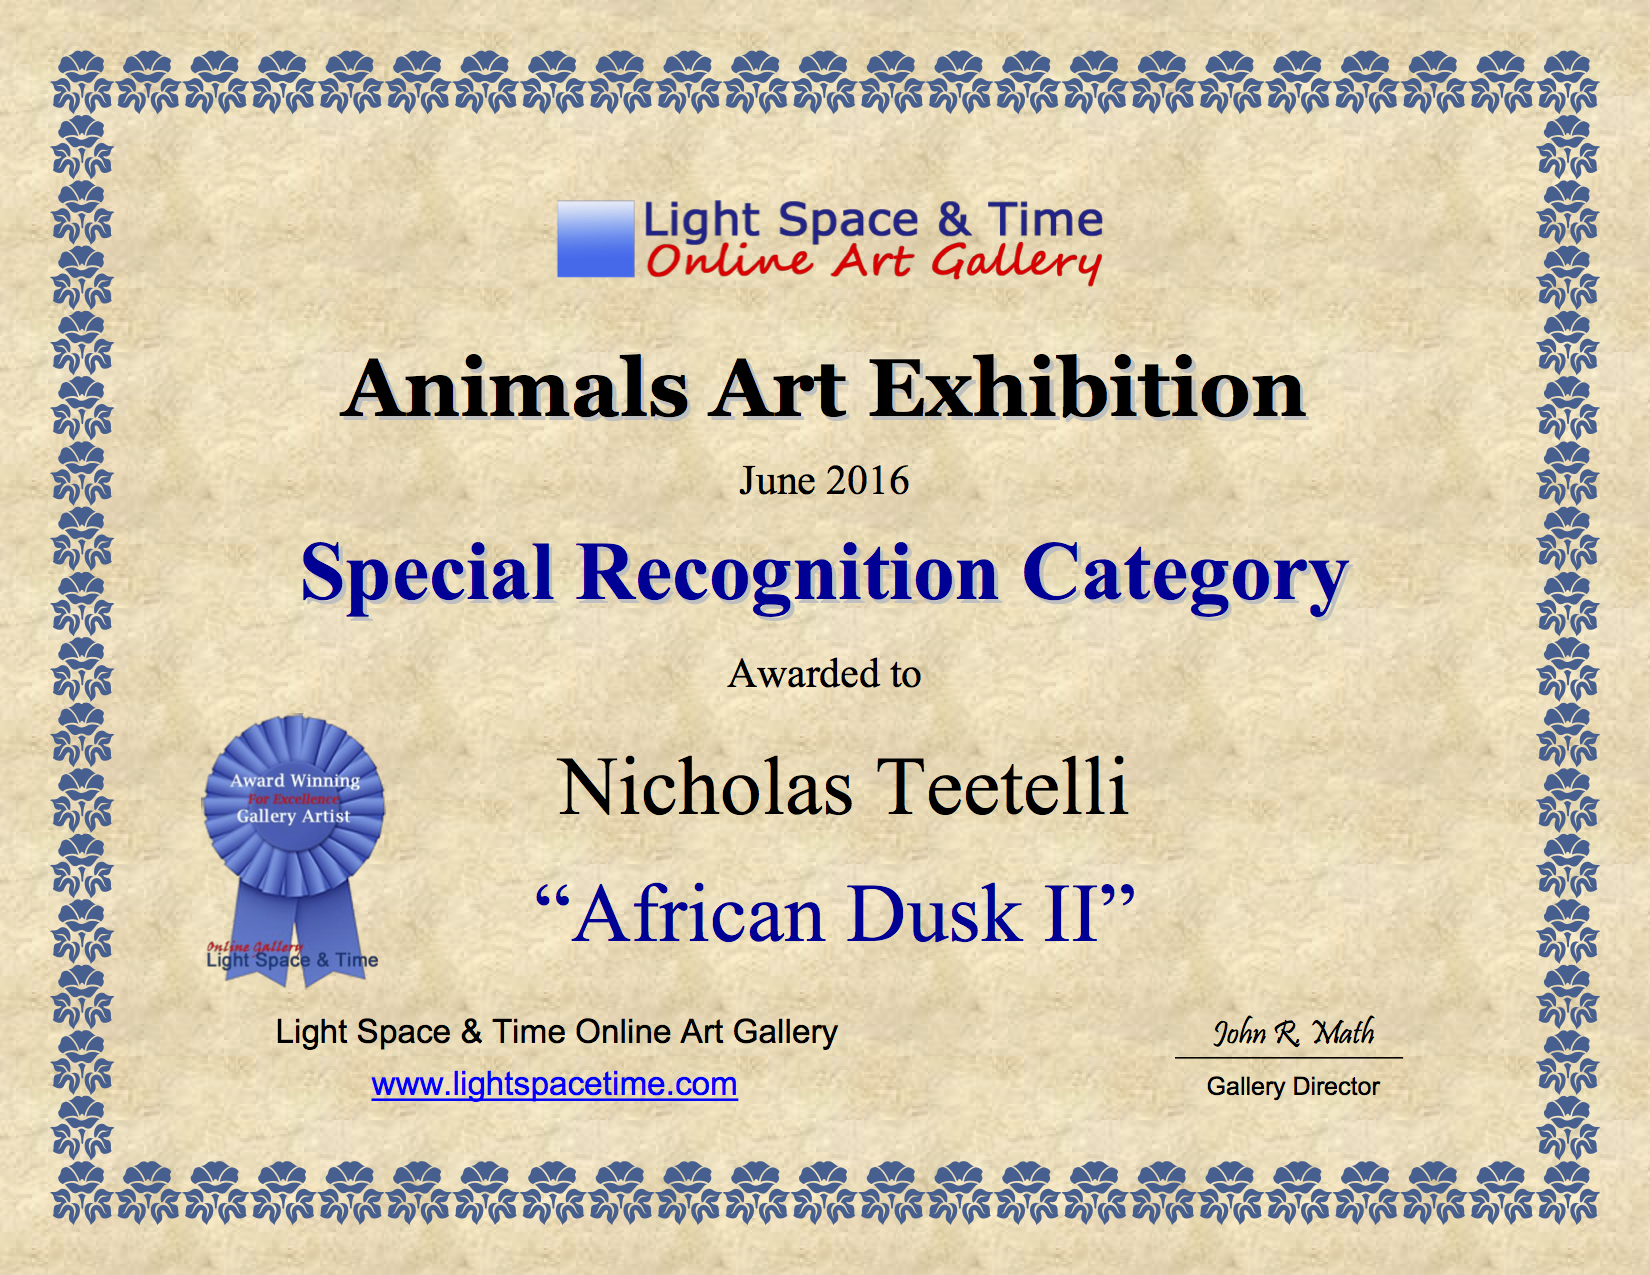 2016-06 LS&T Art Exhibition- Animals - Special Recognition - African Dusk II.png